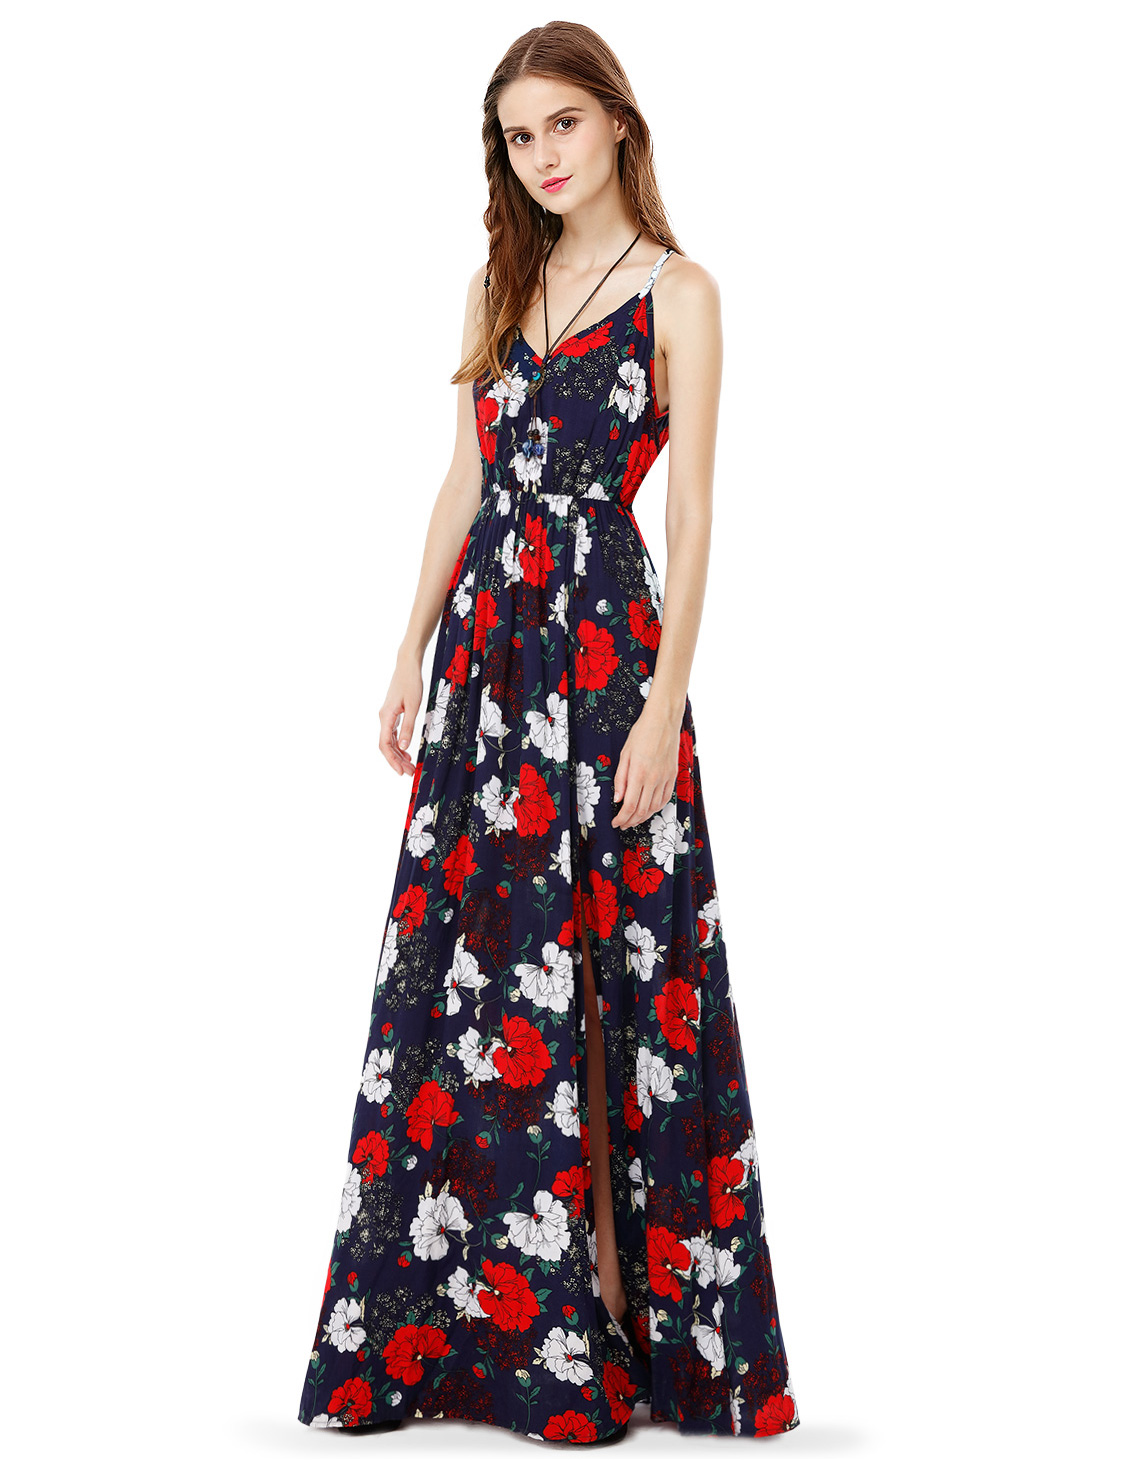 Women's Floral Printed Long Dresses Summer Beach Casual ...